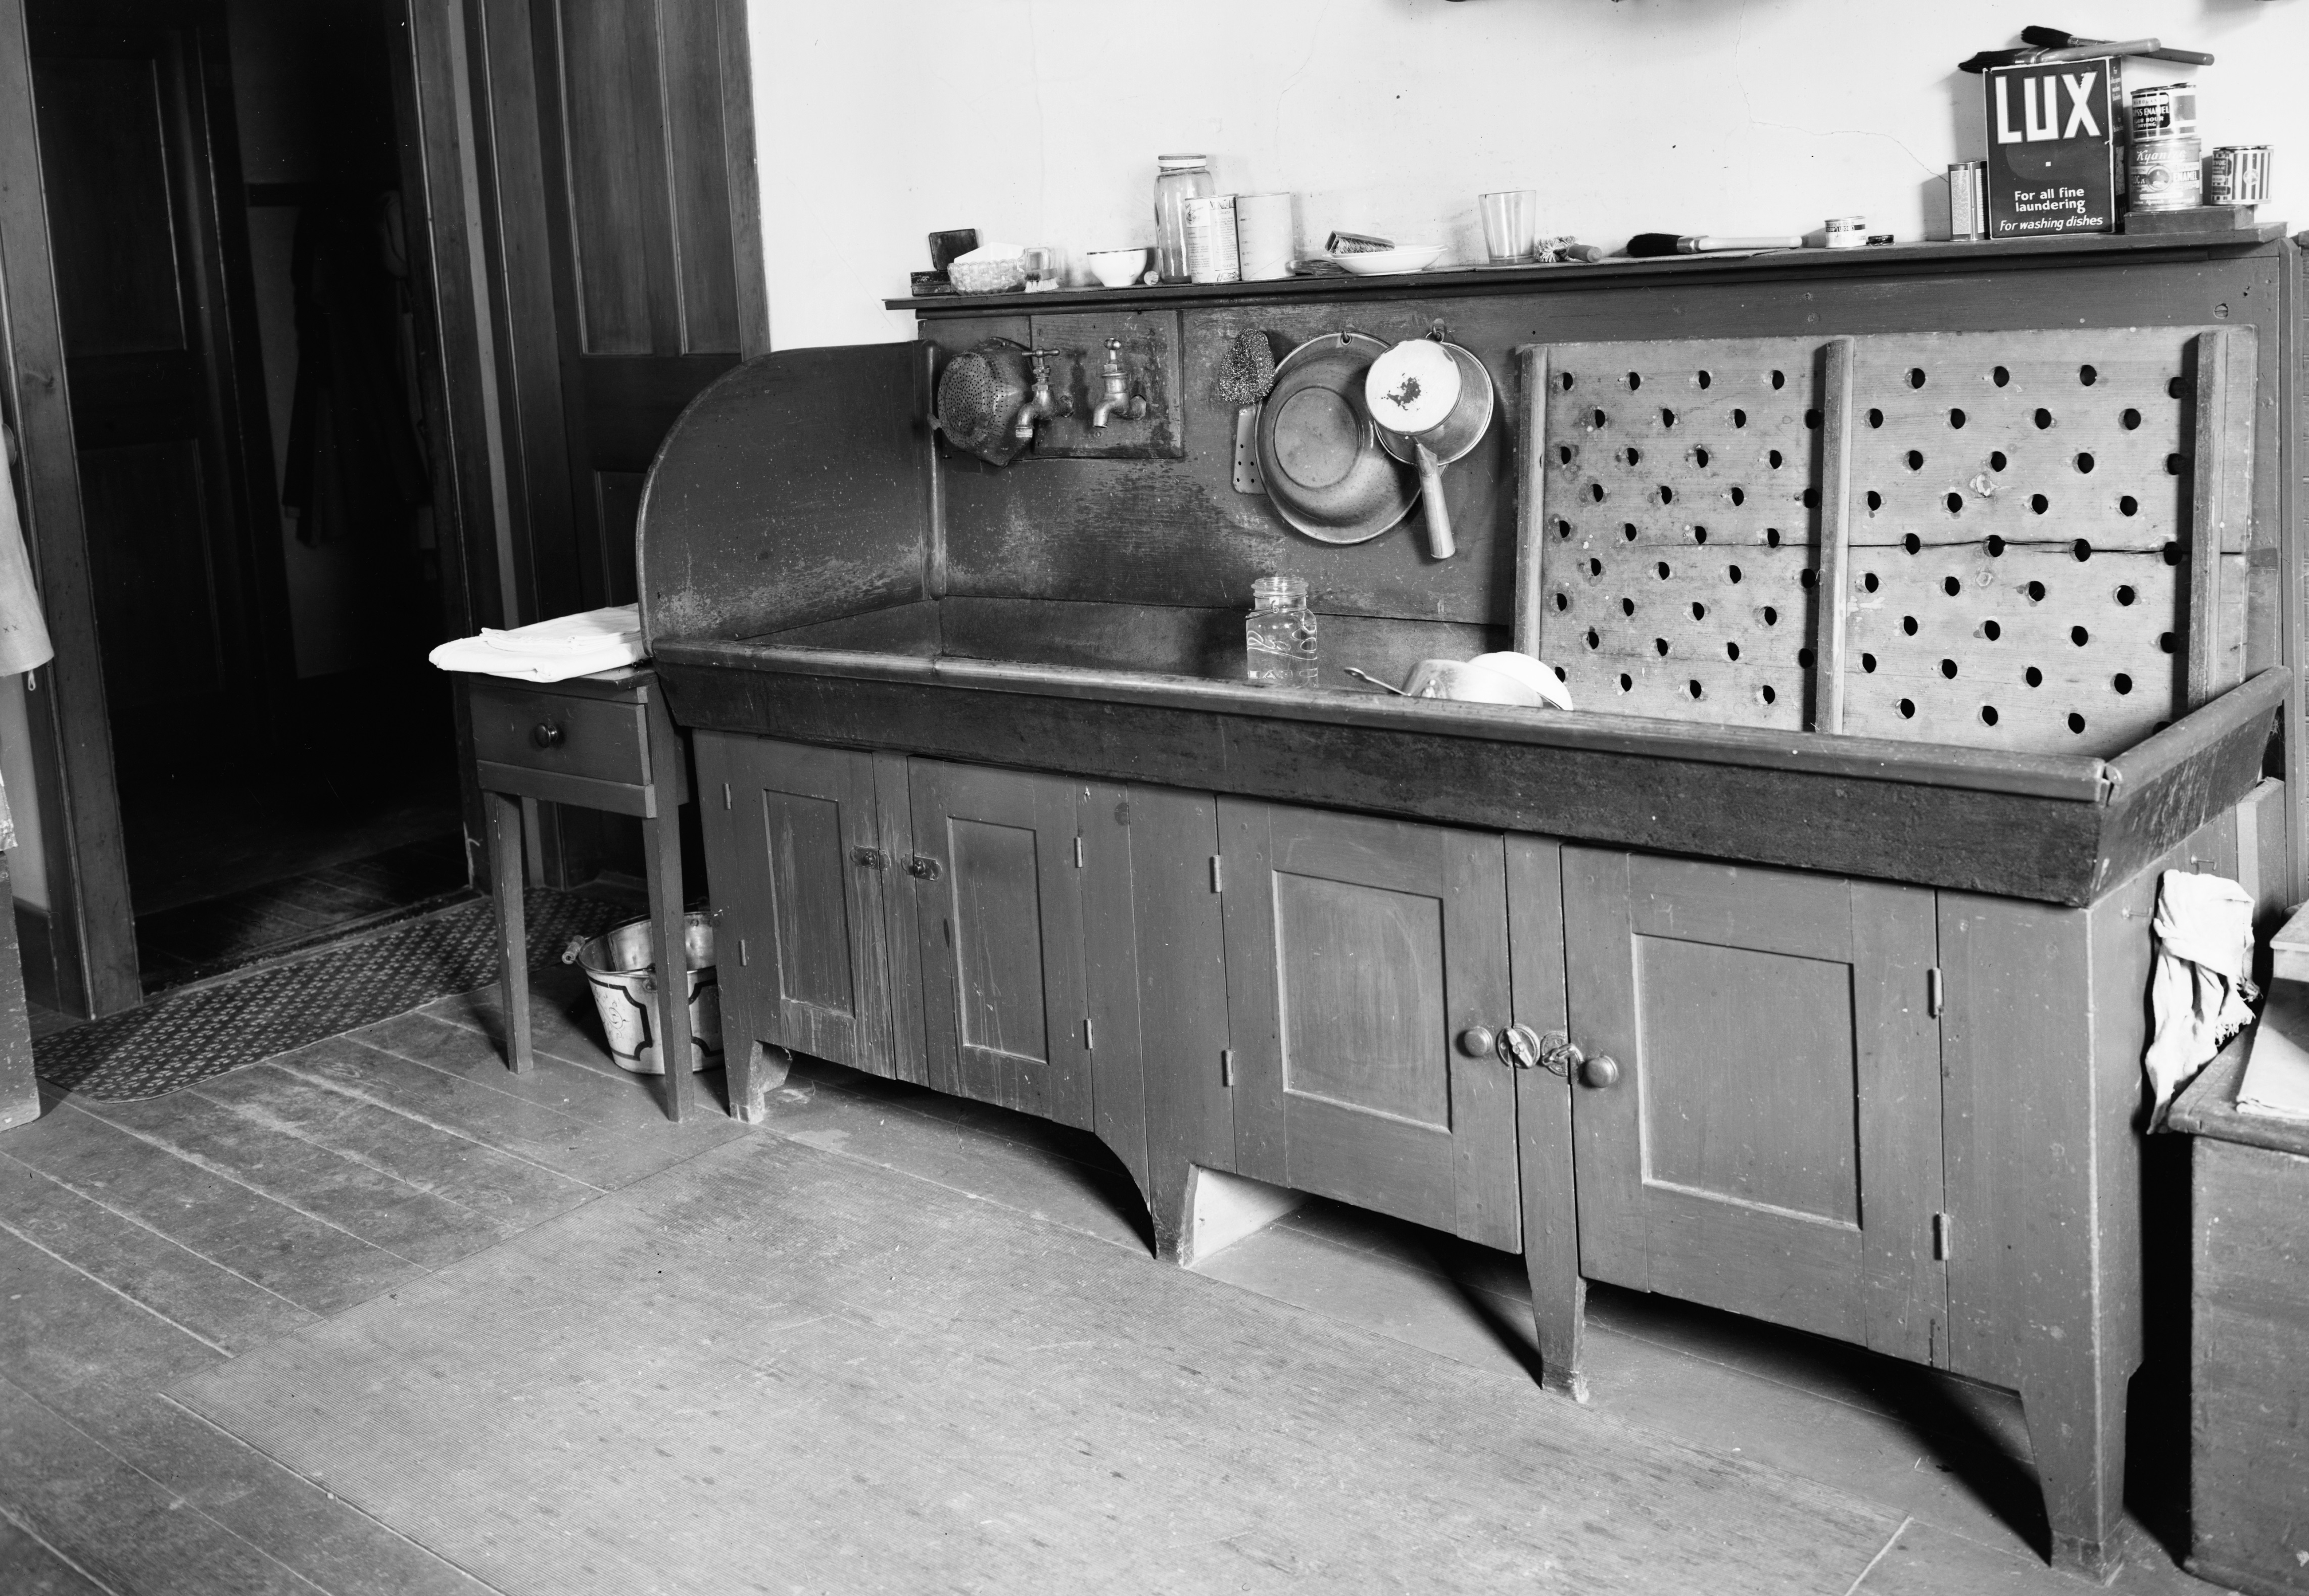 Canning Kitchen Sink, North Family, Mount Lebanon, NY, 1939